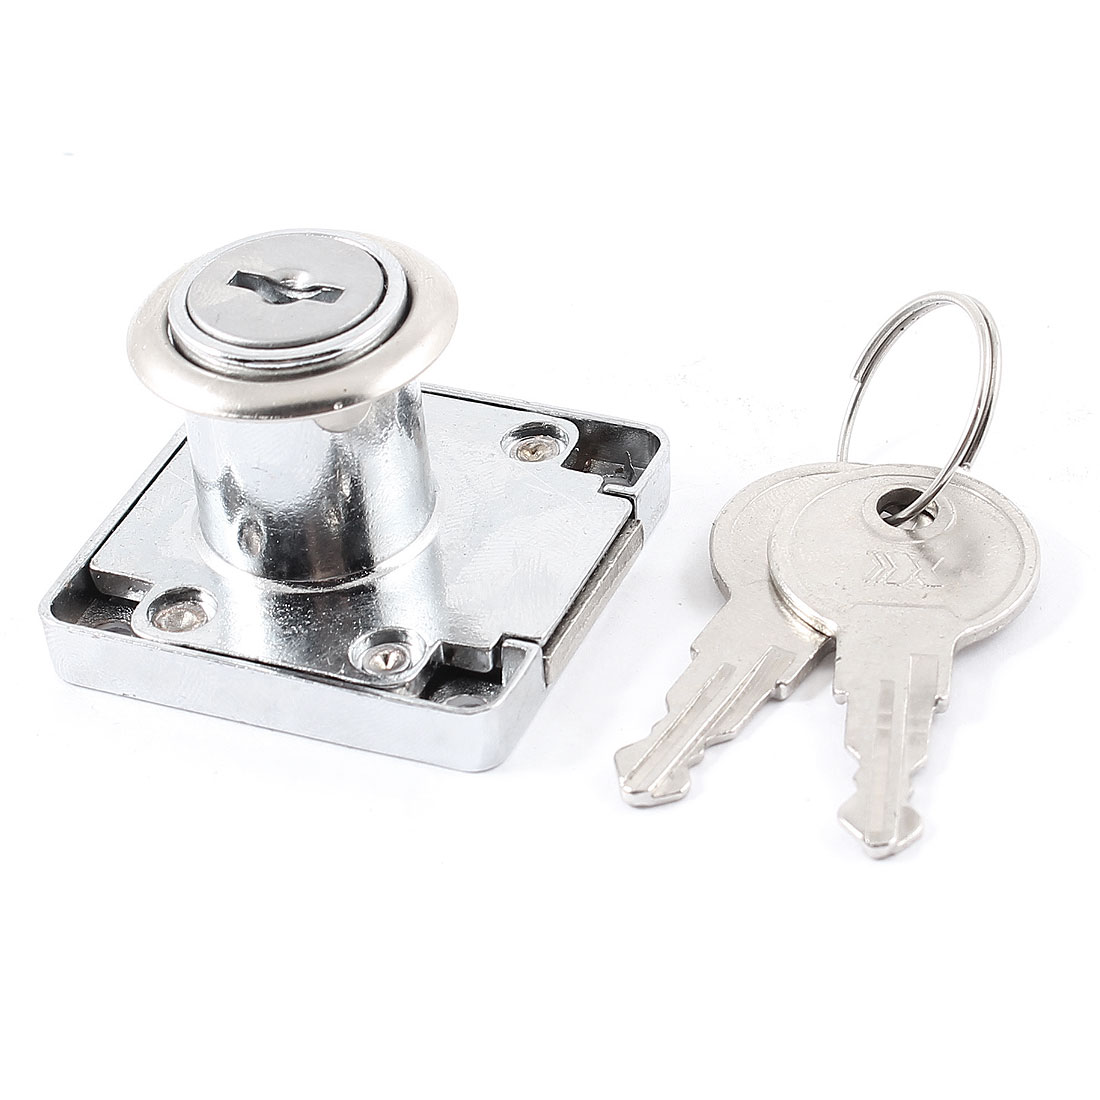 18mmx22mm Cylinder 40mmx40mm Base Keys Turning 180 Degrees Metal Drawer Locking